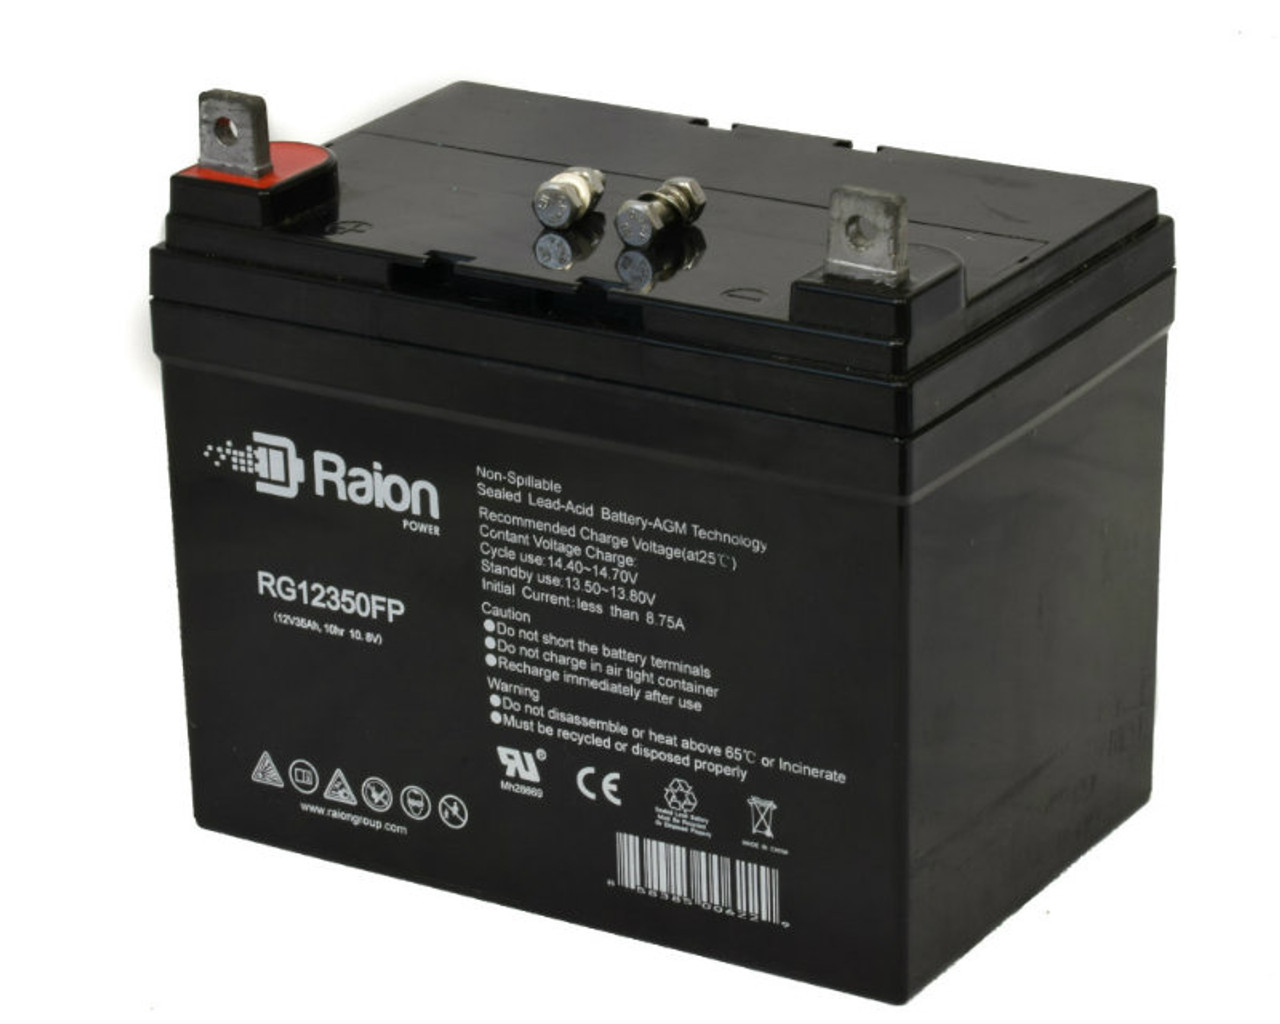 RG12350FP Sealed Lead Acid Battery Pack For Everest & Jennings 14 Inch Growing Marathon Mobility Scooter